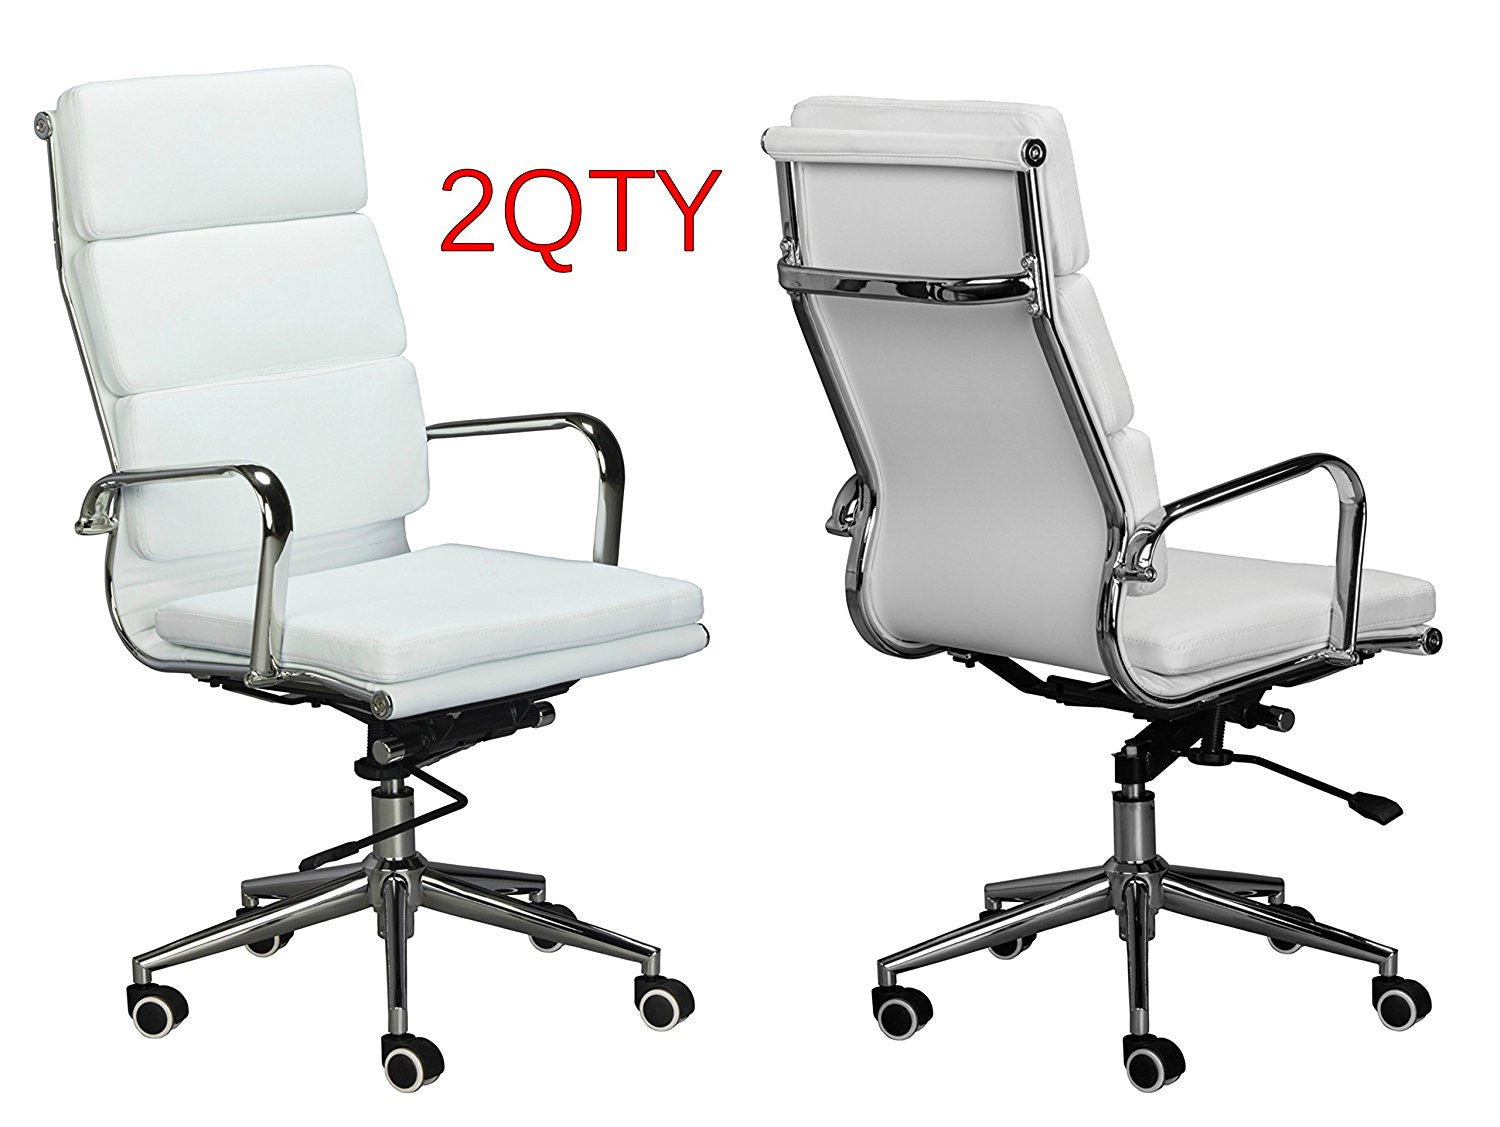 side view office set. Classic Replica High Back Office Chair (Set Of 2) - White Vegan Leather, Thick Density Foam, Stabilizing Bar Swivel \u0026 Deluxe Tilting Mechanism Side View Set